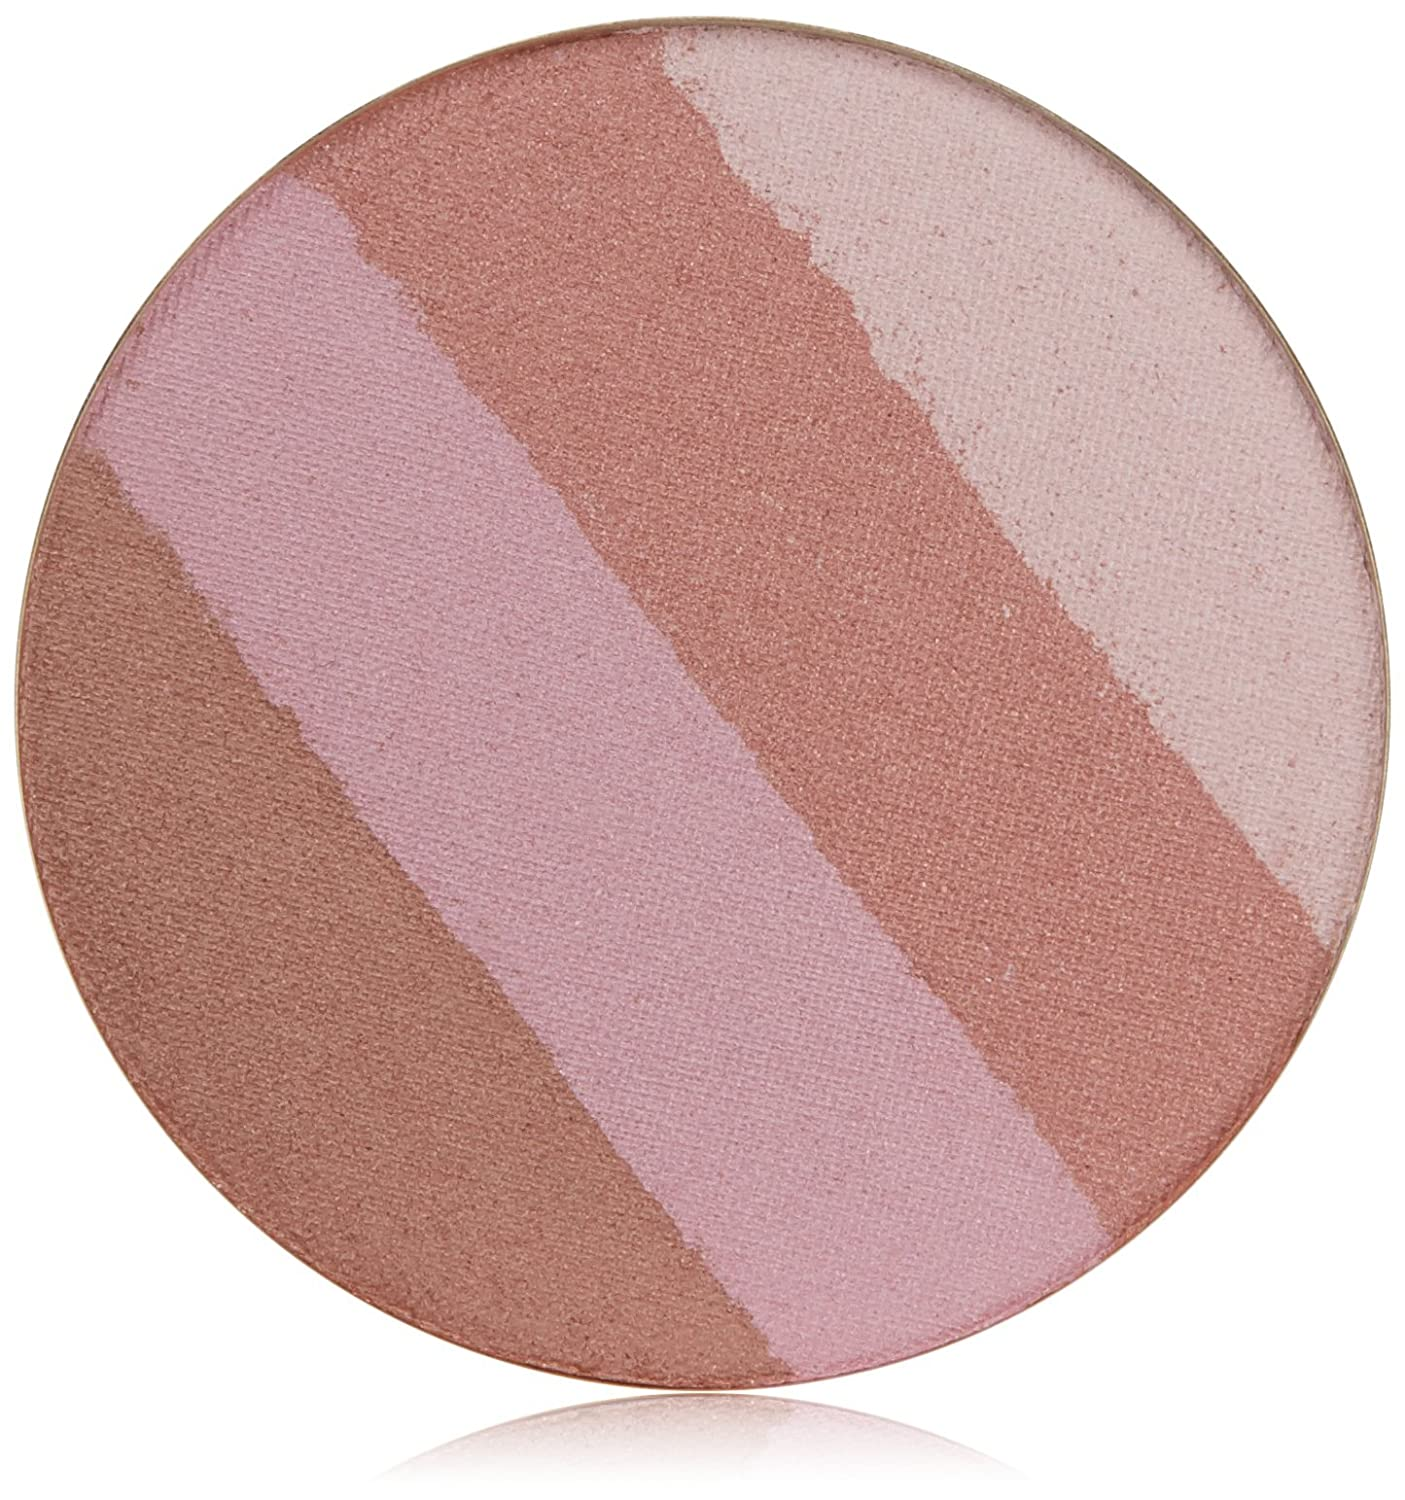 Jane Iredale Bronzer Refill, Rose Dawn 9.9 g Iredale Mineral Cosmetics 12506-1